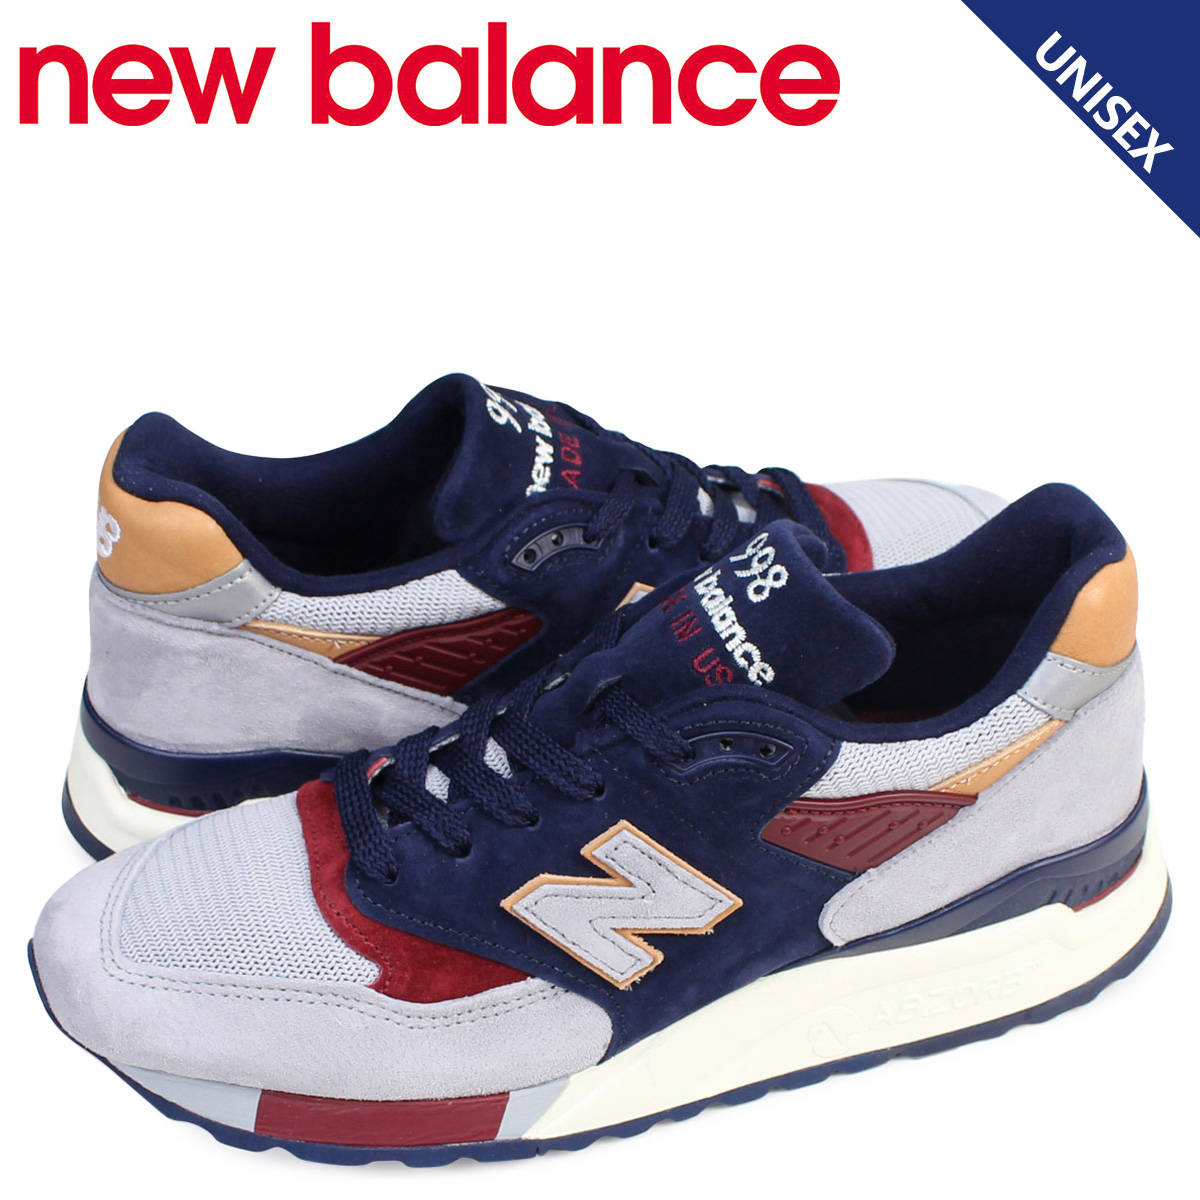 best service e5e5e 5c0ba new balance 998 men's lady's New Balance sneakers M998CSU D Wise MADE IN  USA shoes navy [177]